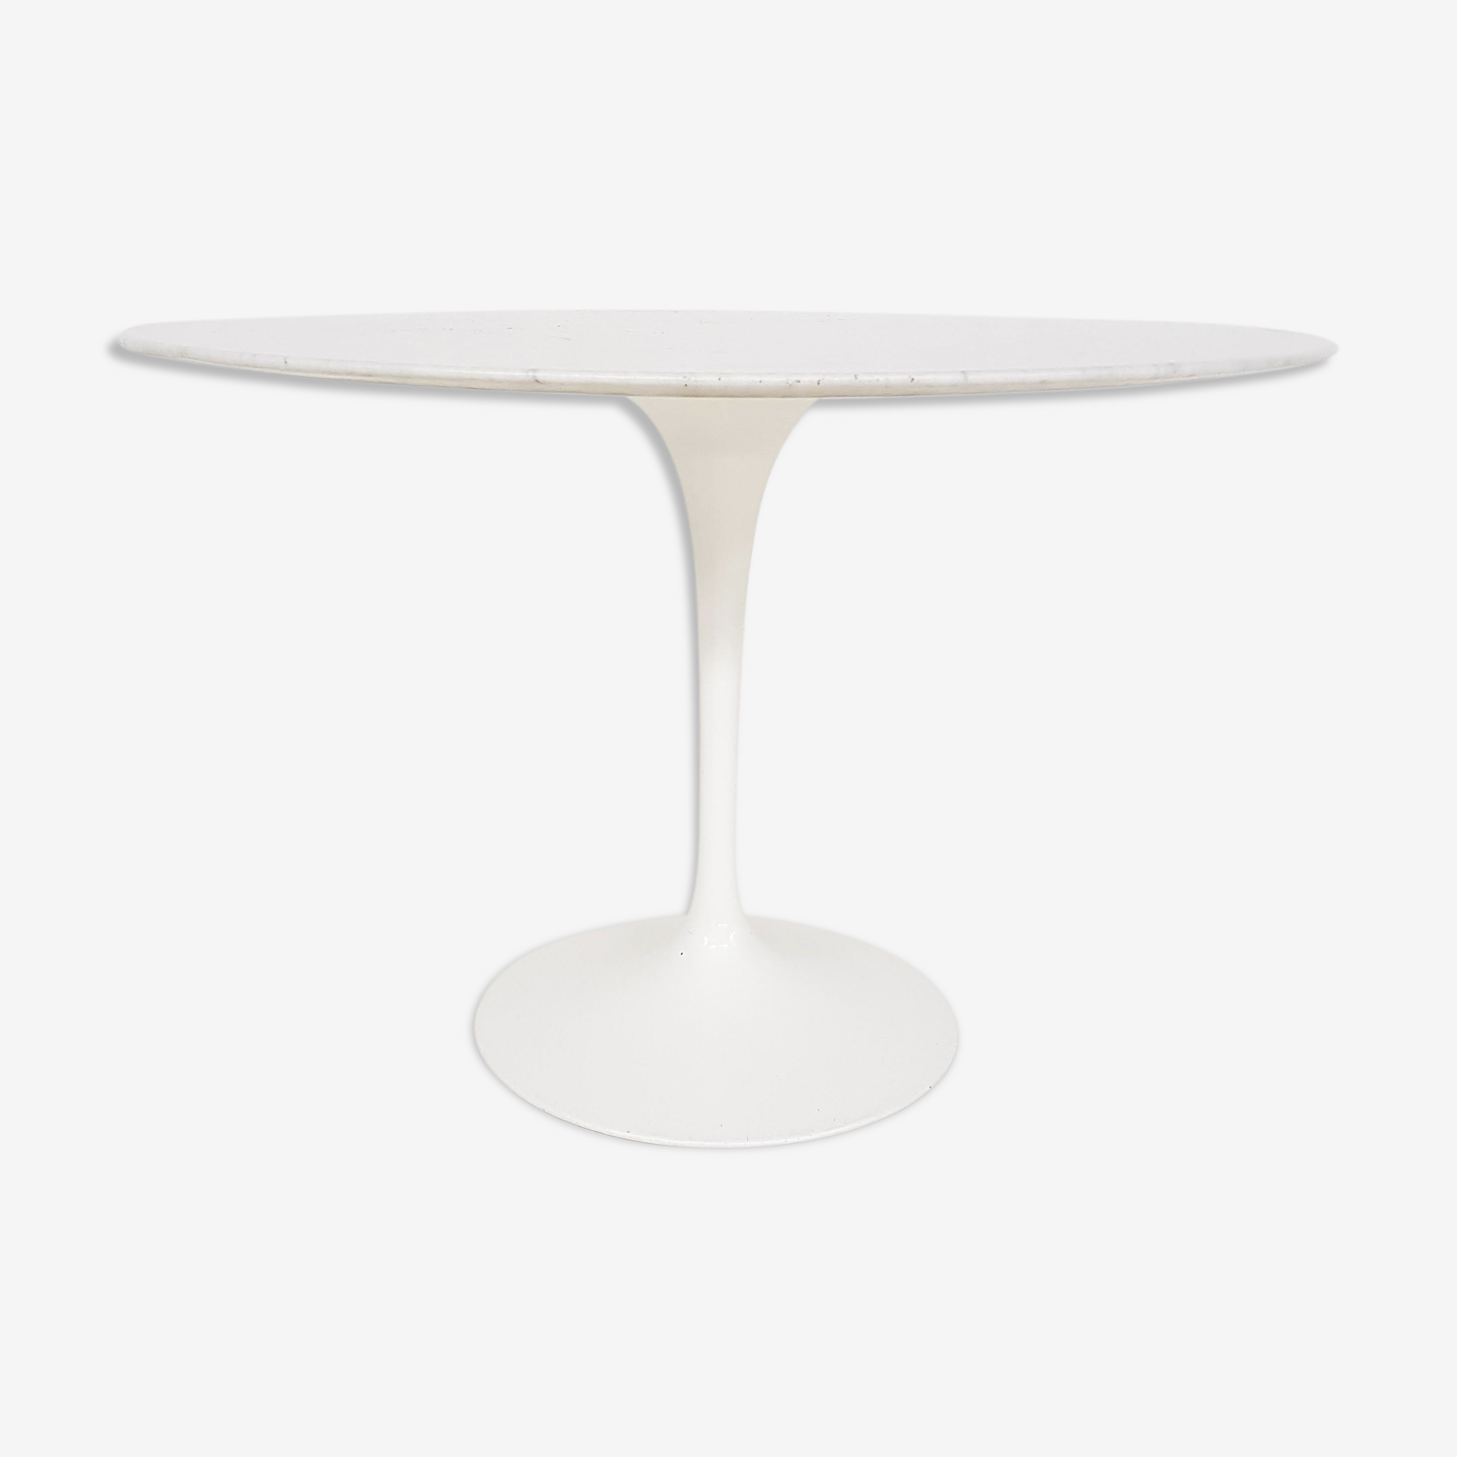 Tulip Table by Eero Saarinen for Knoll International